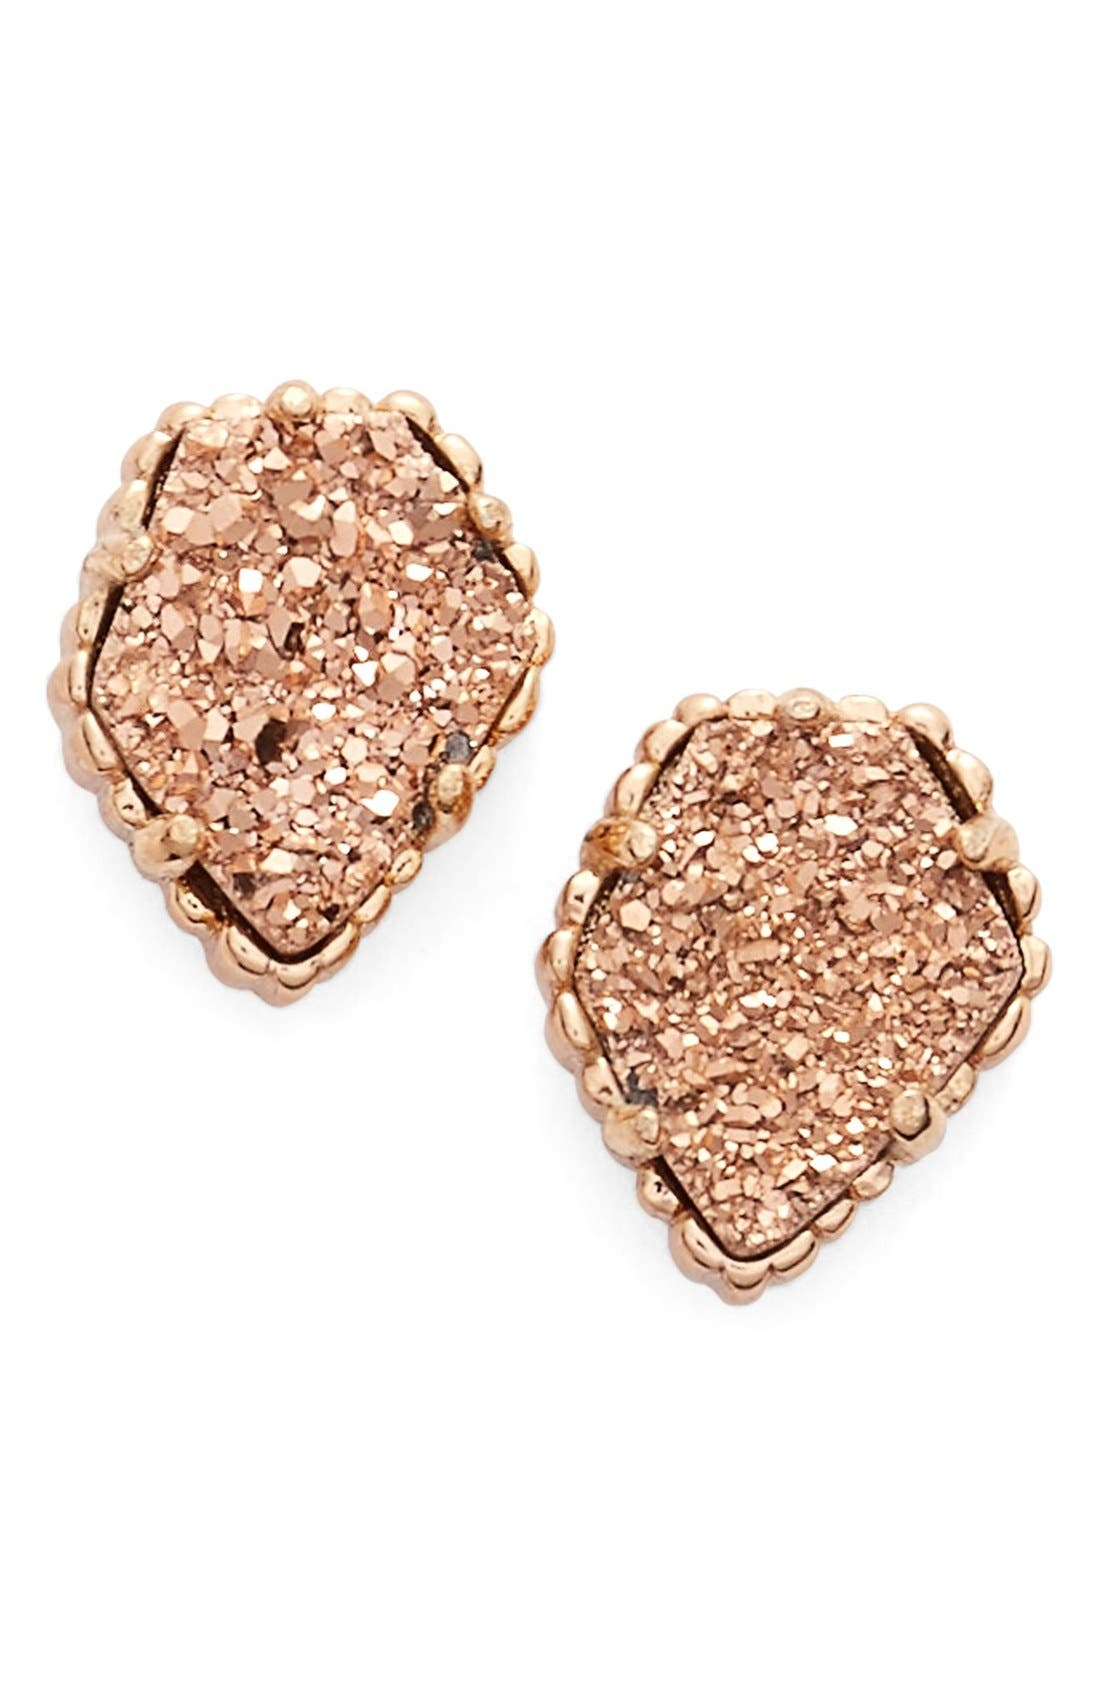 Tessa Stone Stud Earrings,                         Main,                         color, Rose Drusy/ Rose Gold